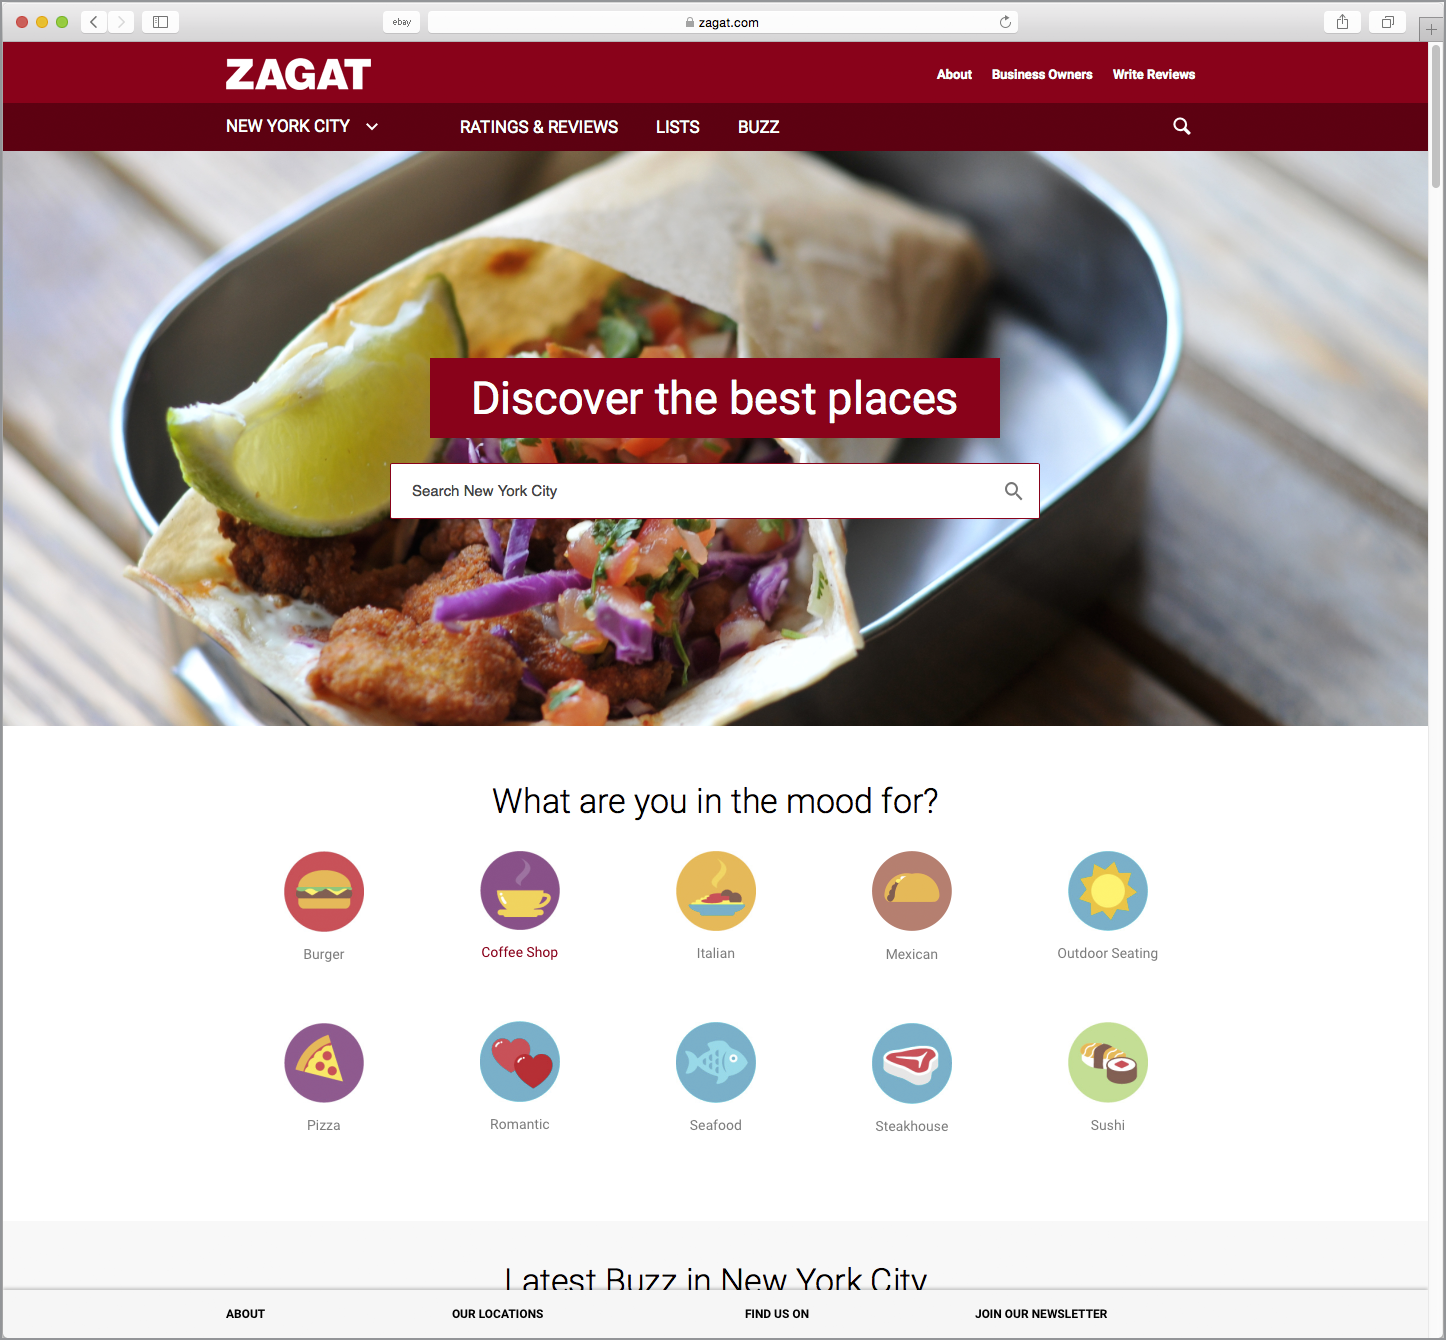 zagat food icon design nyc